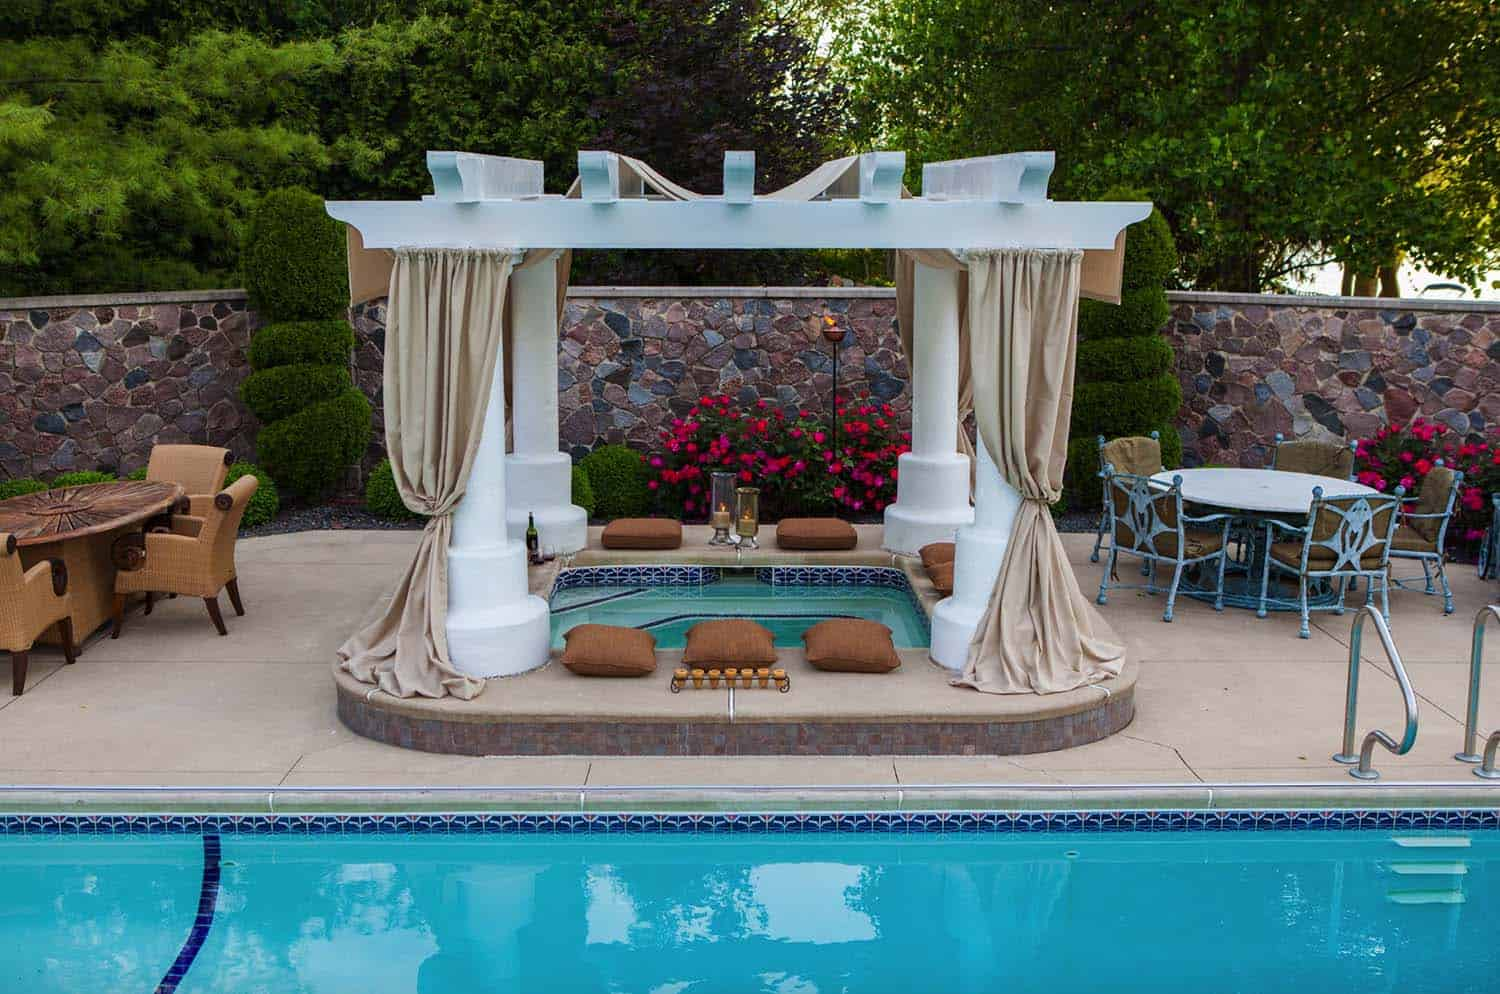 Jacuzzi Pool Ideas 40 Outstanding Hot Tub Ideas To Create A Backyard Oasis